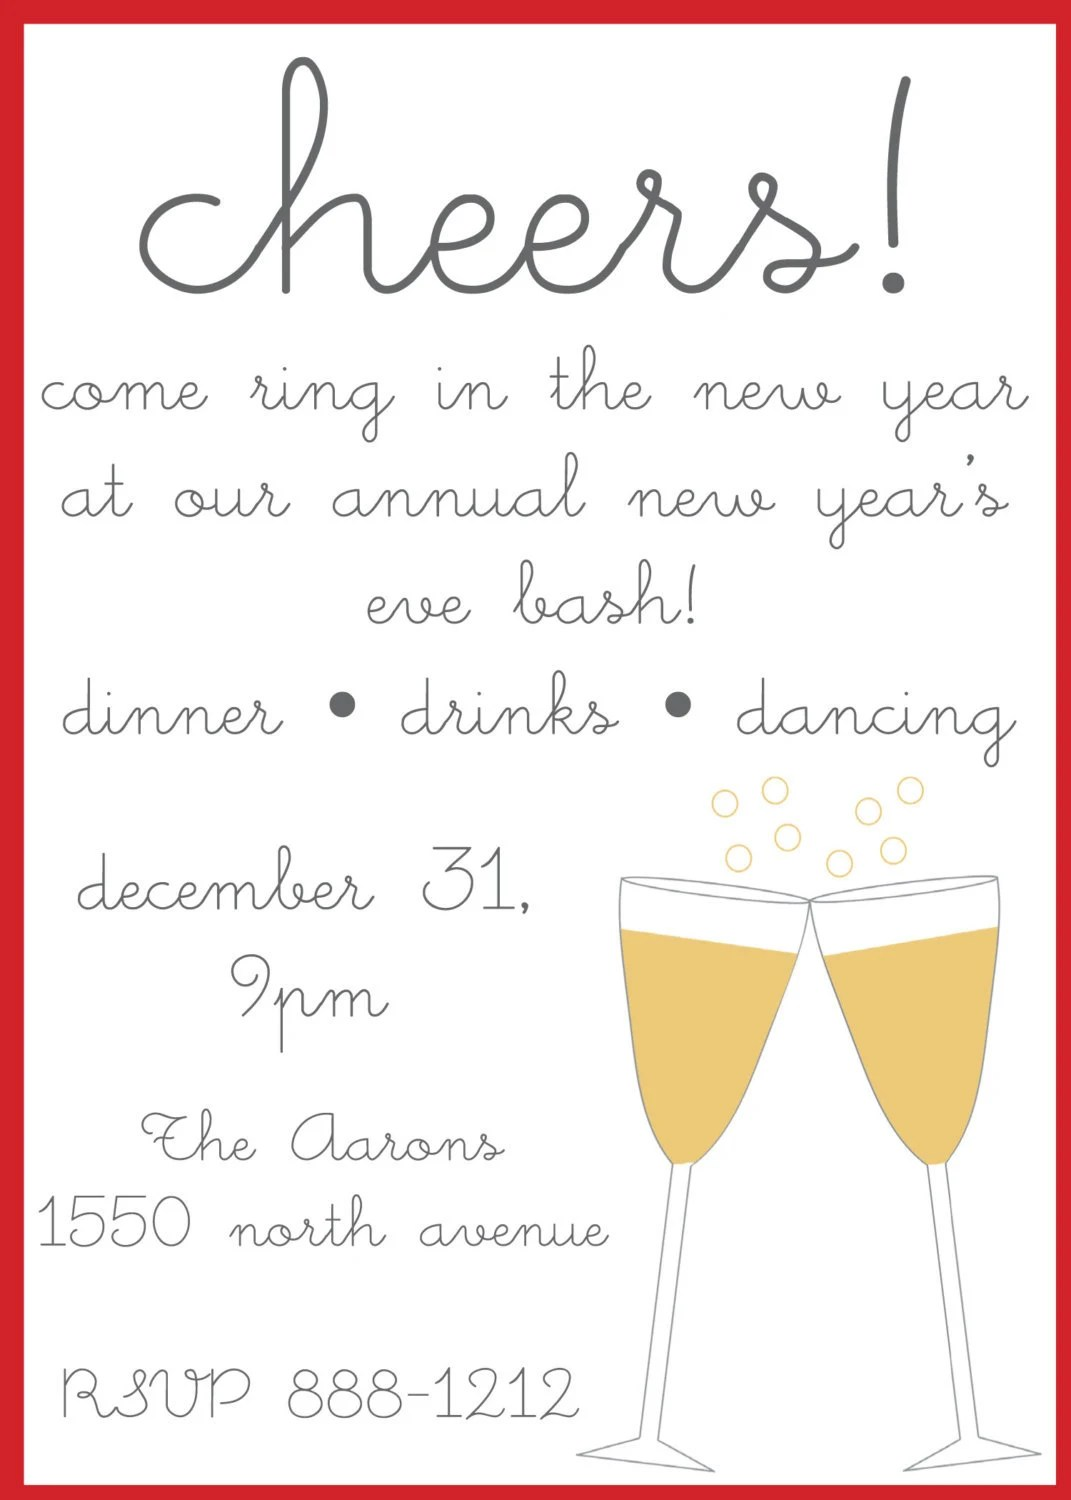 New years eve party invitation wording gallery party invitations sample invitation new year party choice image invitation sample invitation letter for new year eve party stopboris Image collections